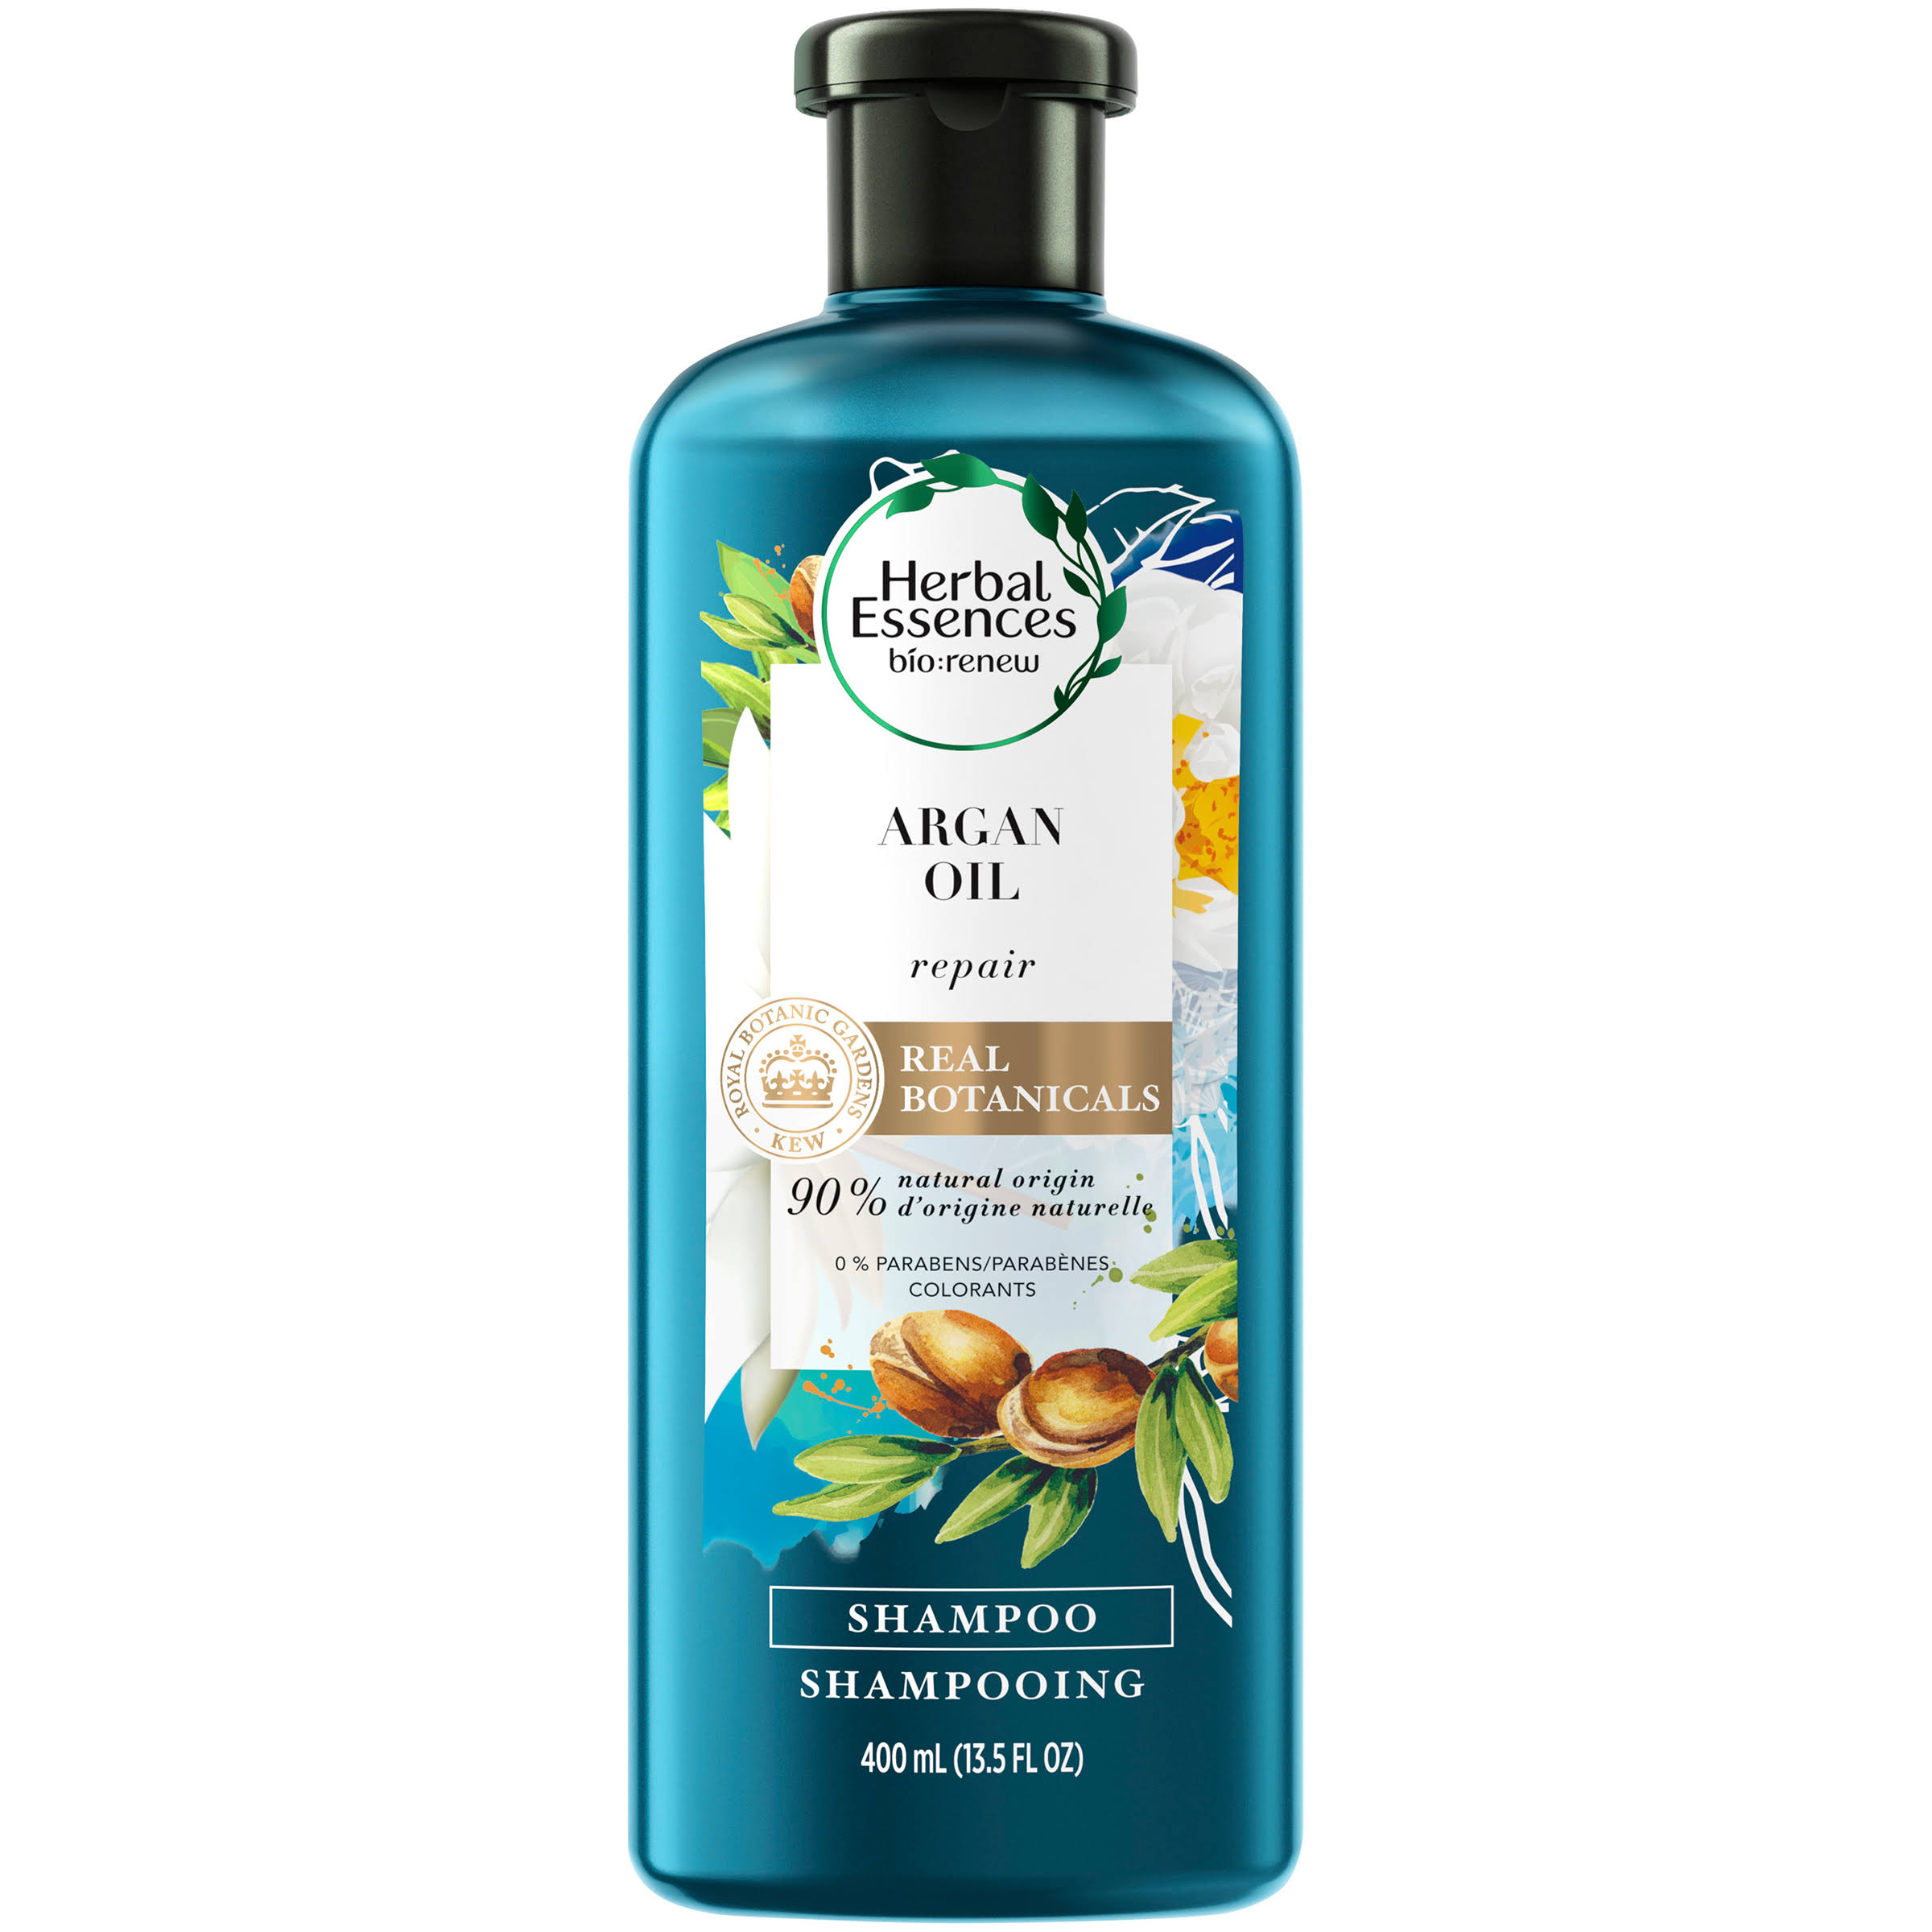 Herbal Essences Argan Oil Of Morocco Repair Shampoo - 400ml